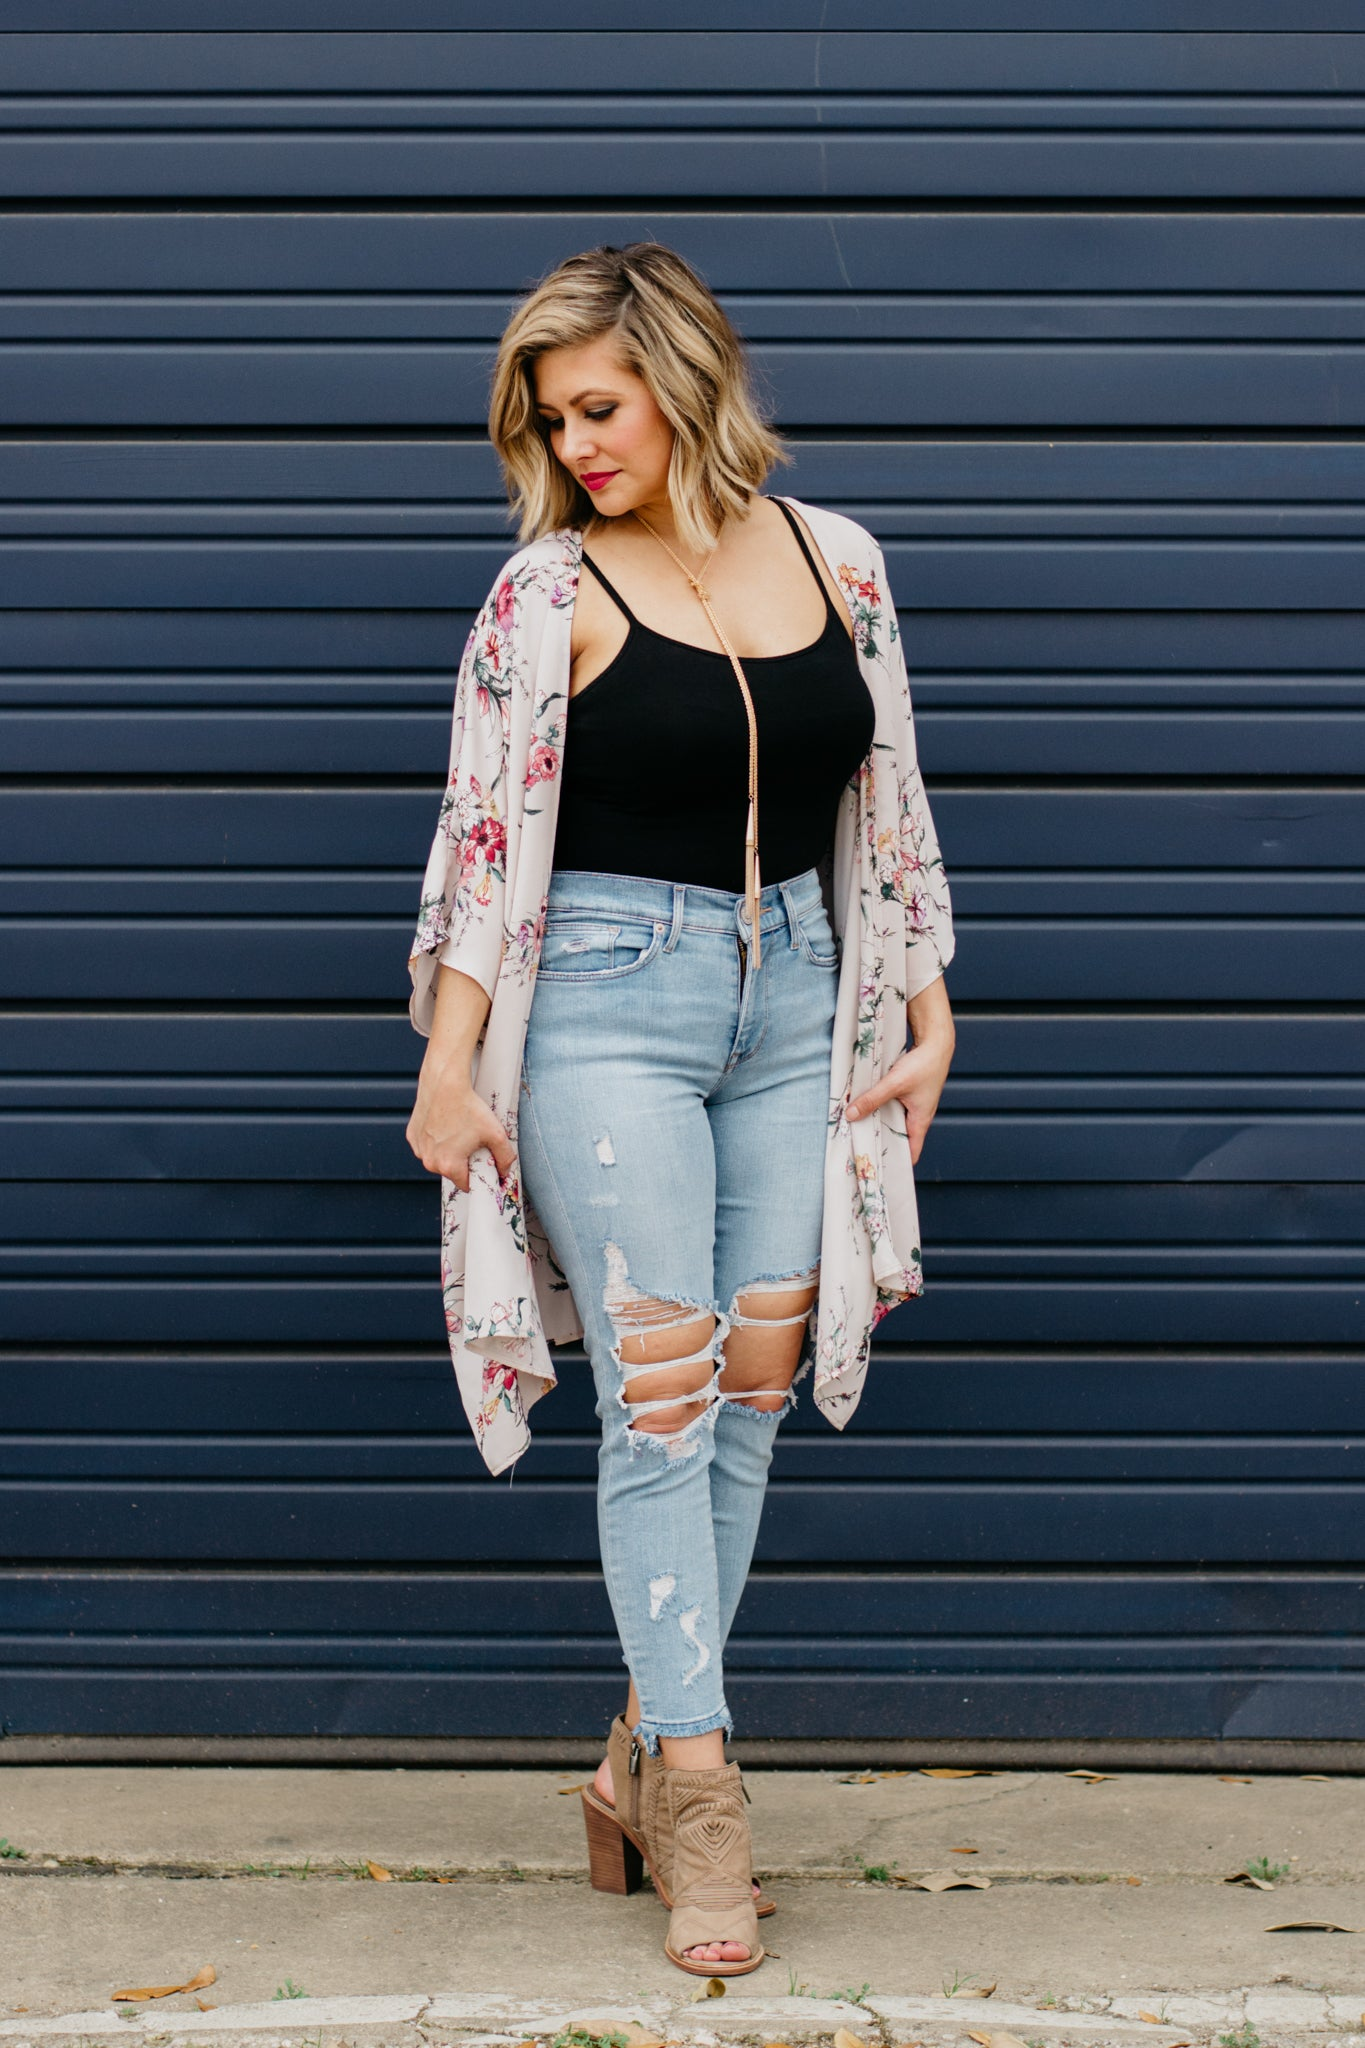 Distressed denim and booties paired with mauve floral kimono